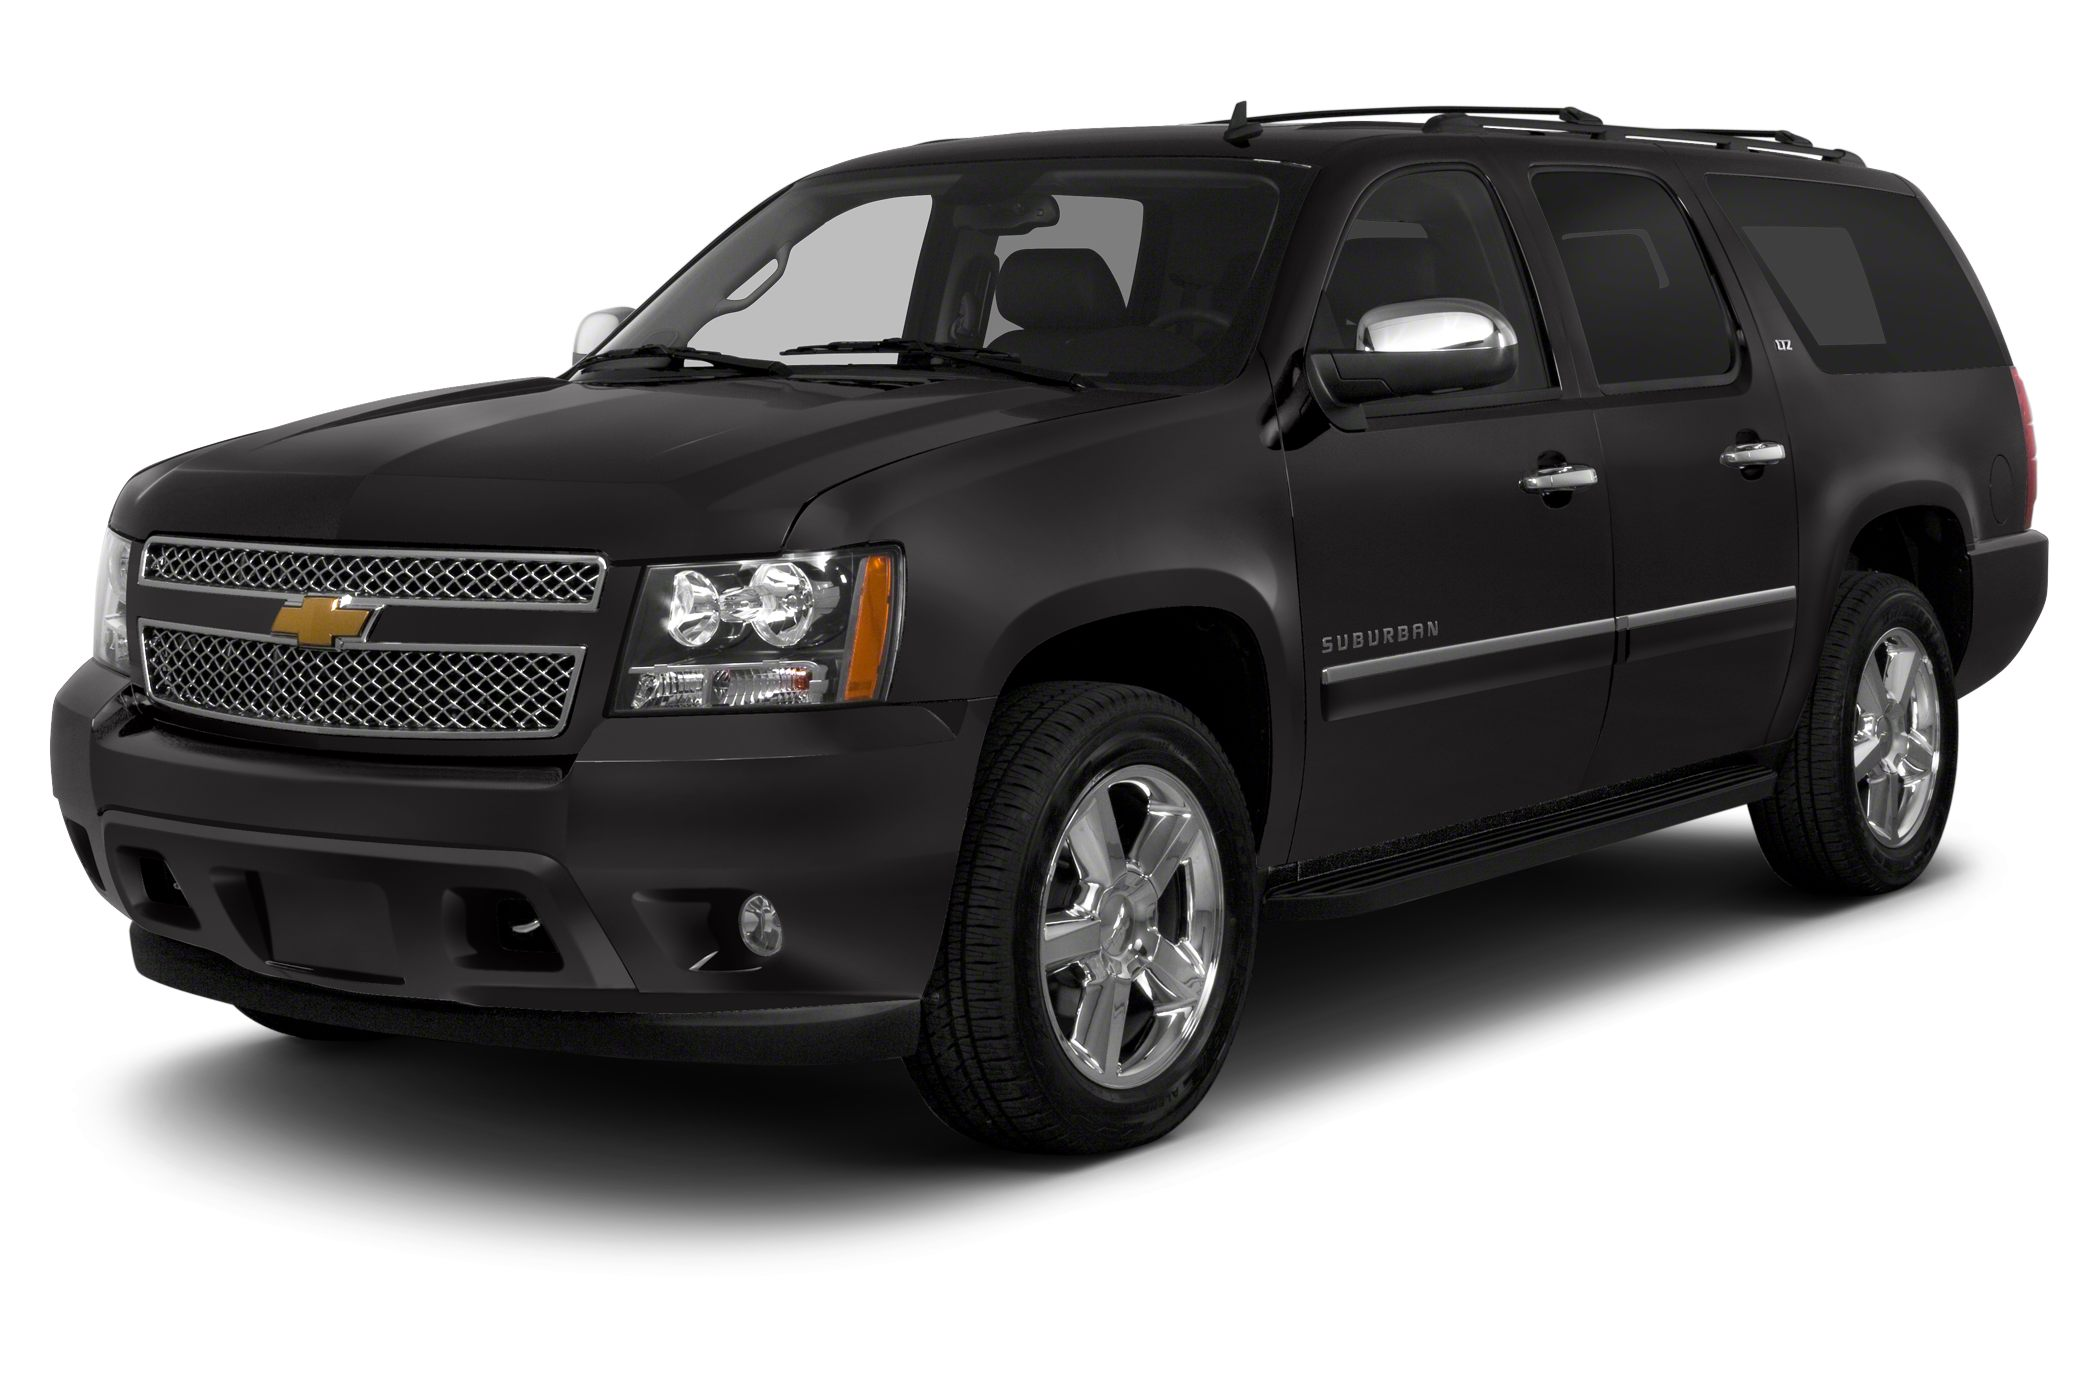 2013 Chevrolet Suburban 1500 LTZ 4x4 Pricing and Options